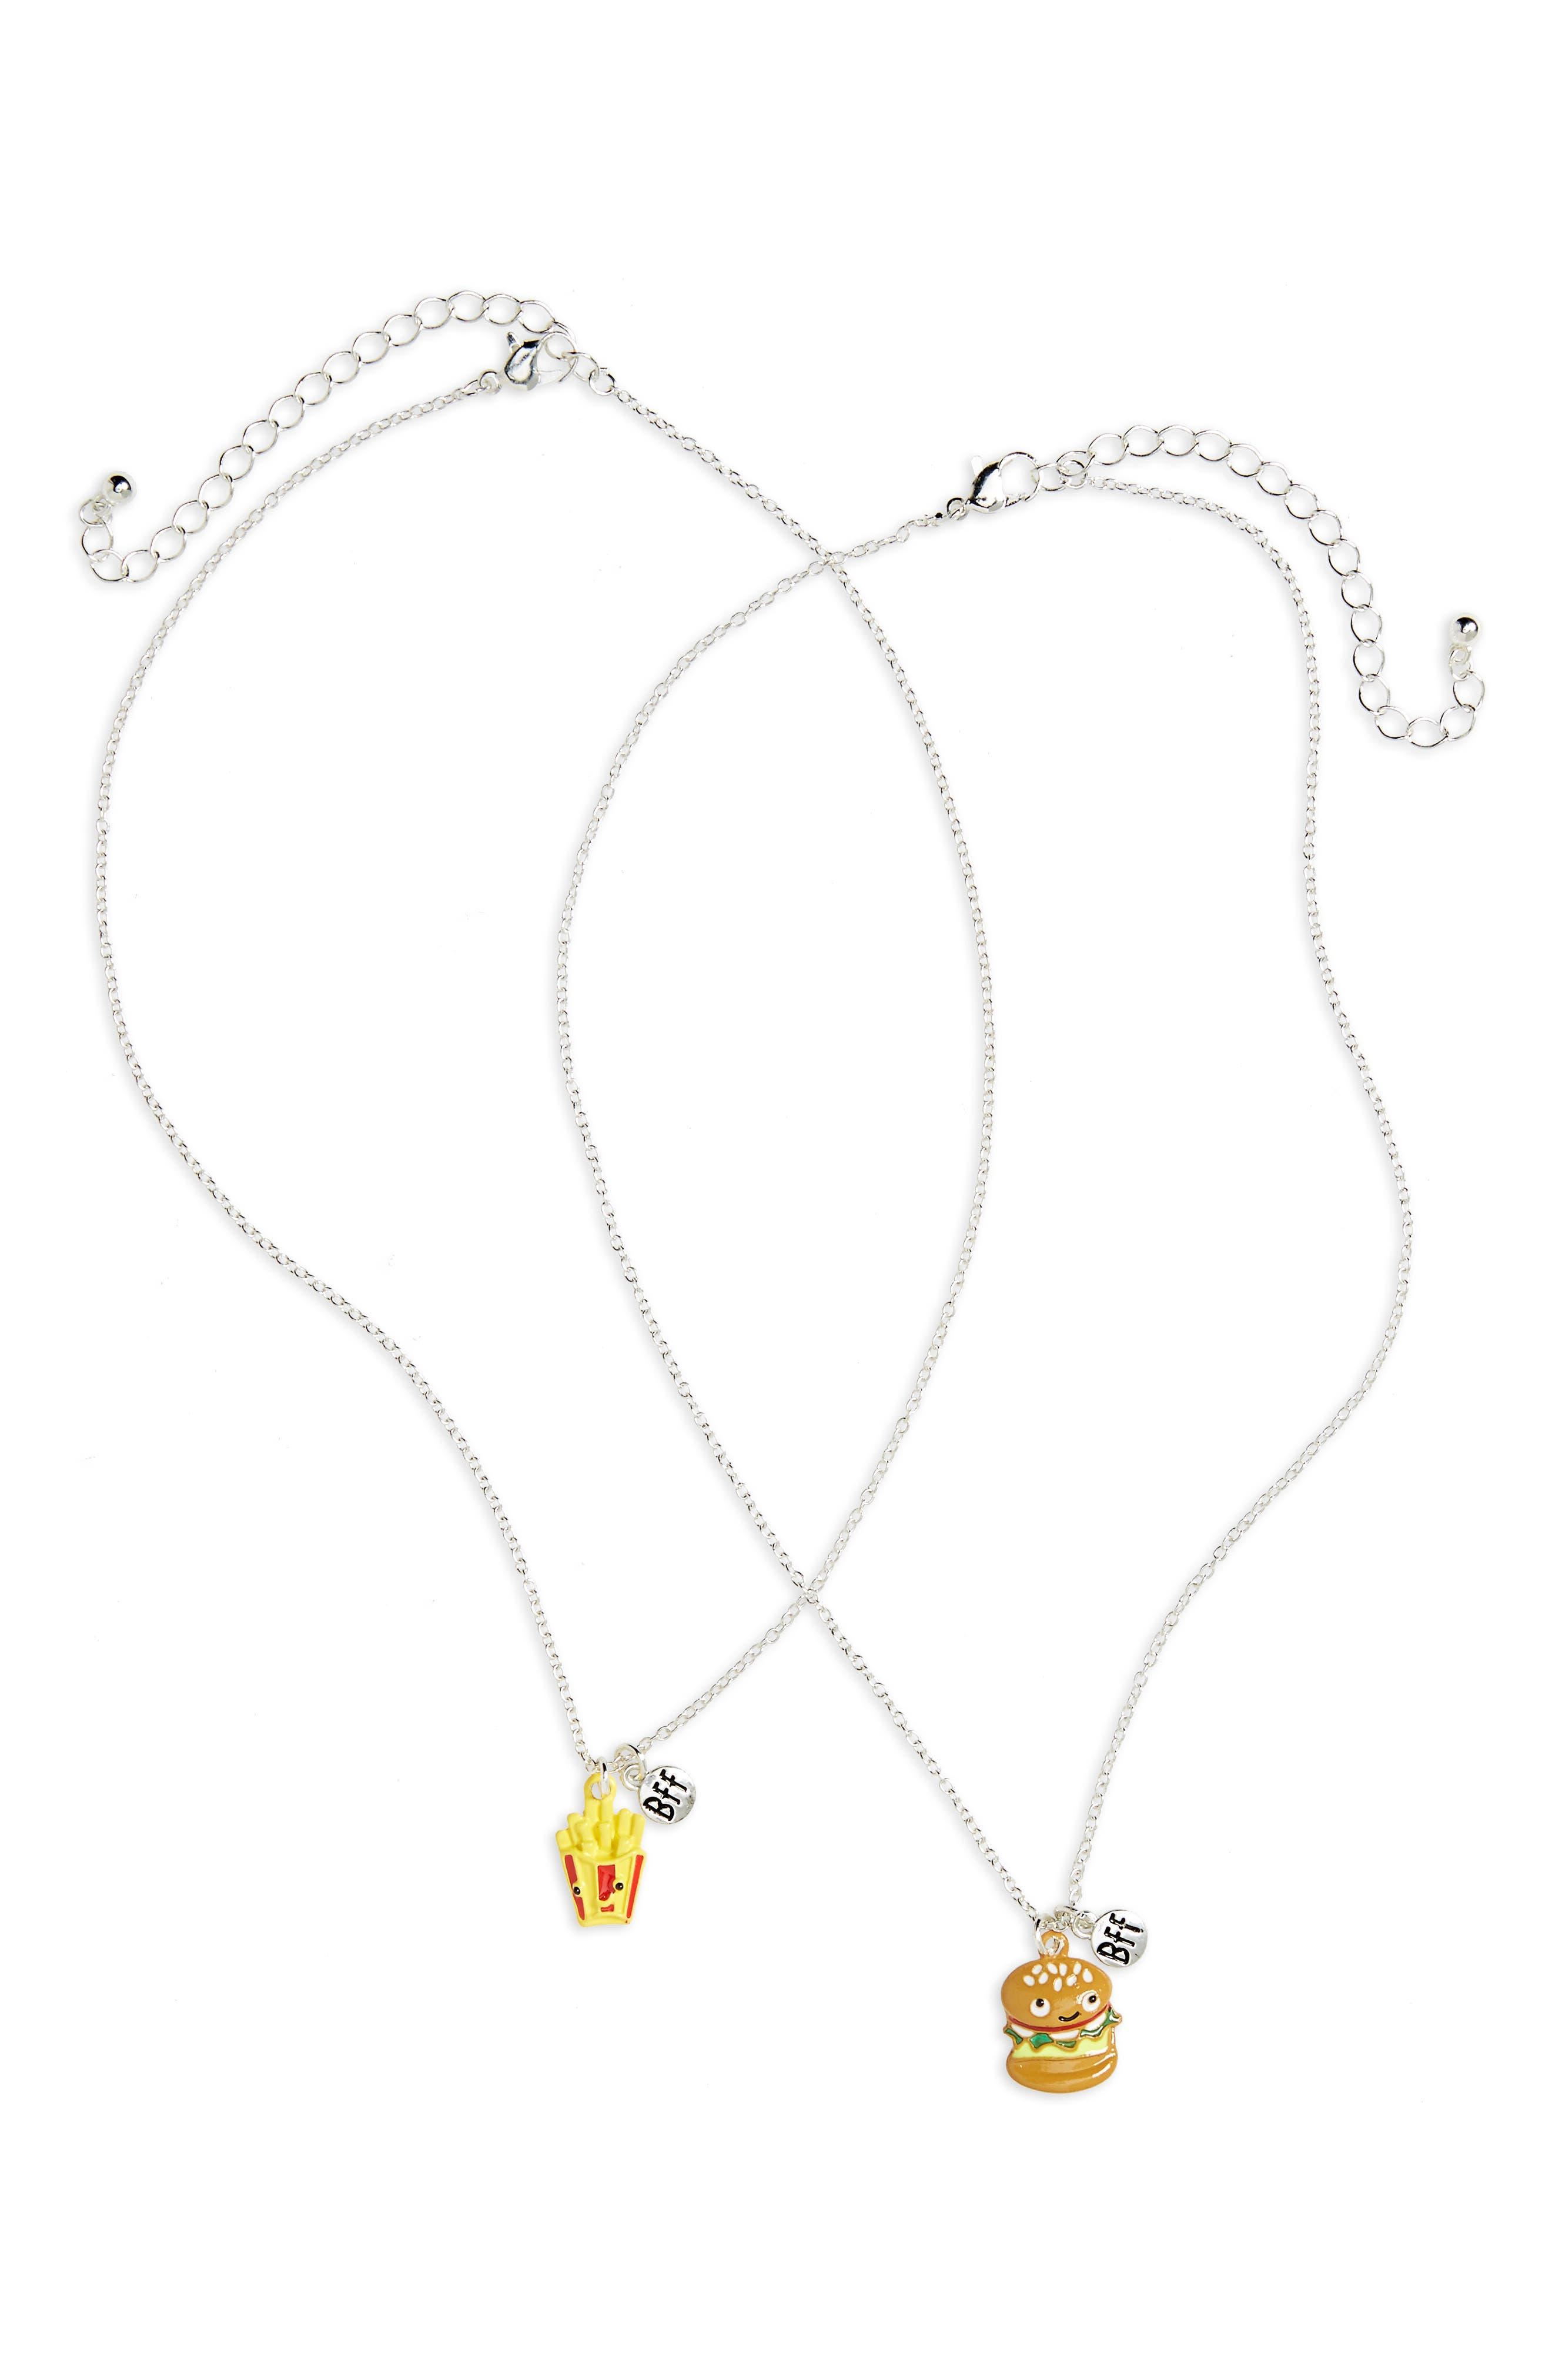 Main Image - Capelli New York Set of 2 Junk Food BFF Necklaces (Girls)